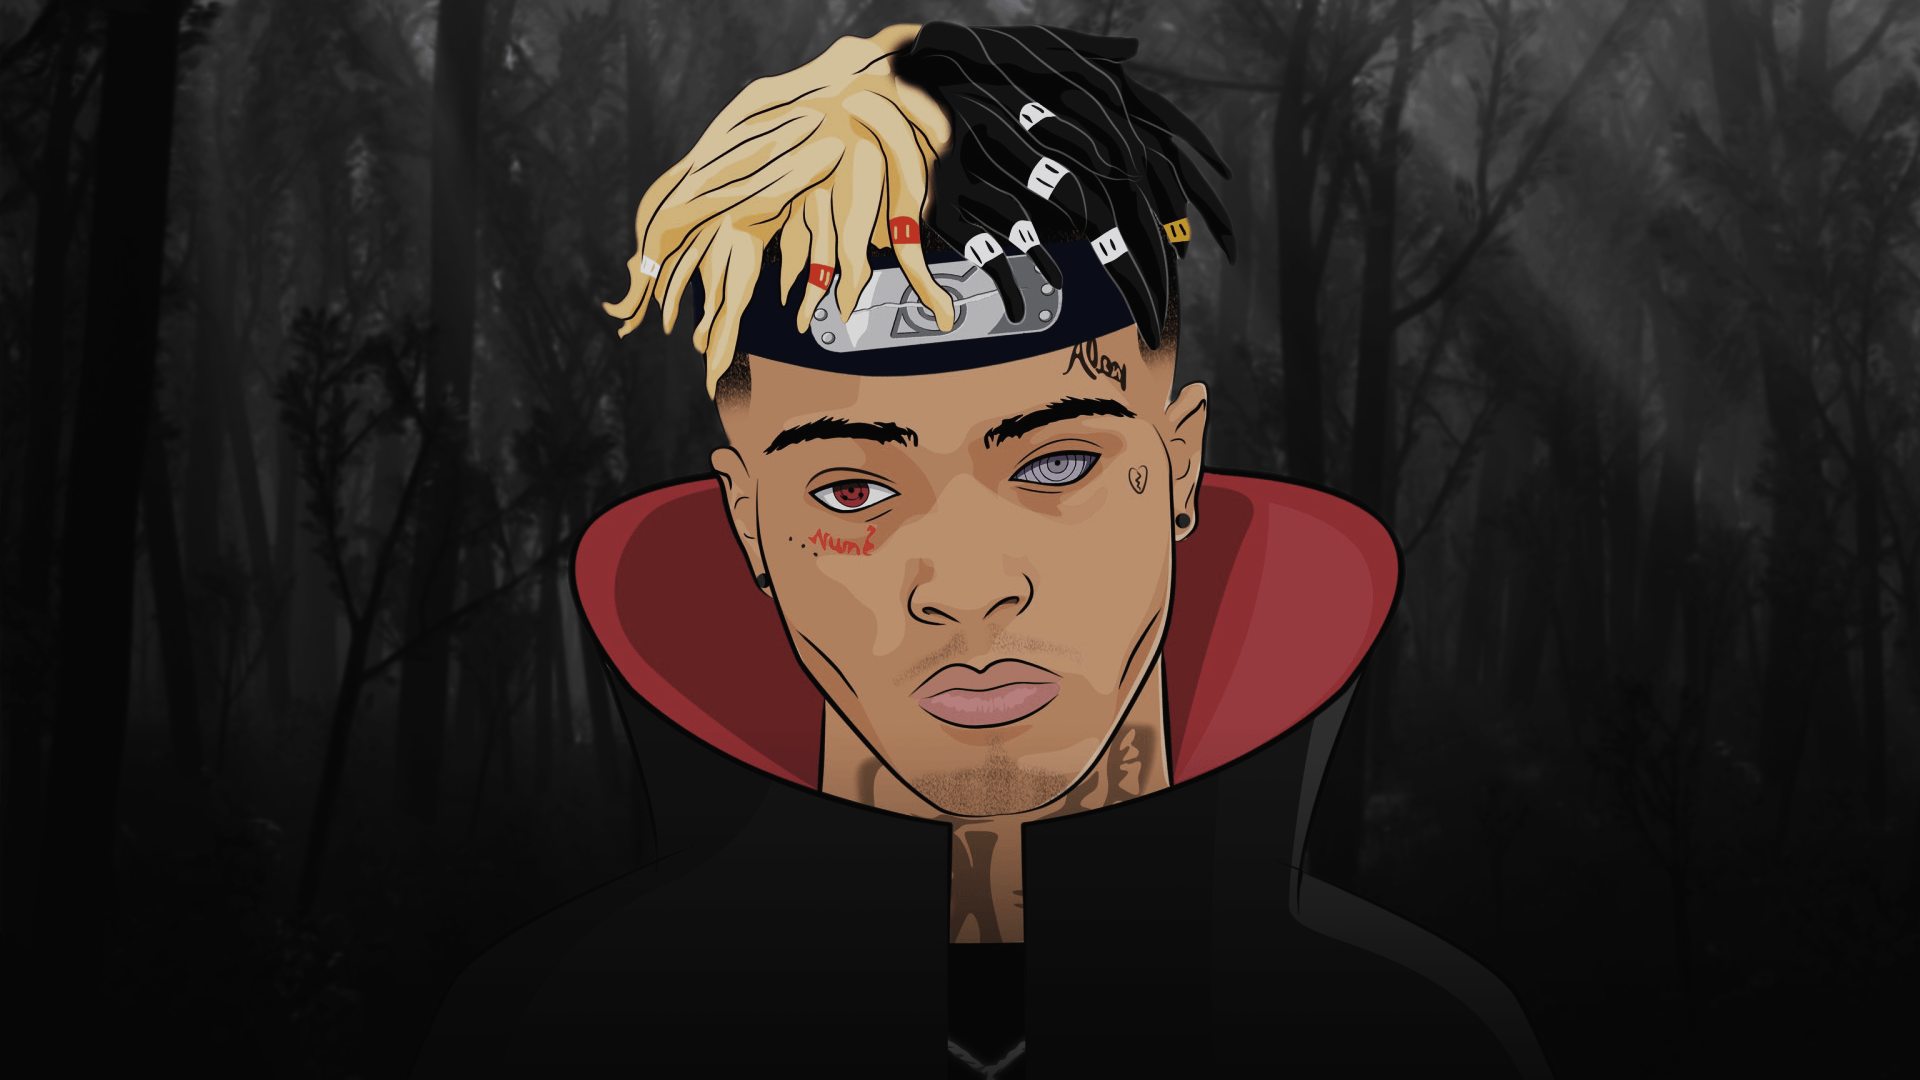 XXXTentacion Cartoon Wallpapers   Top XXXTentacion Cartoon 1920x1080